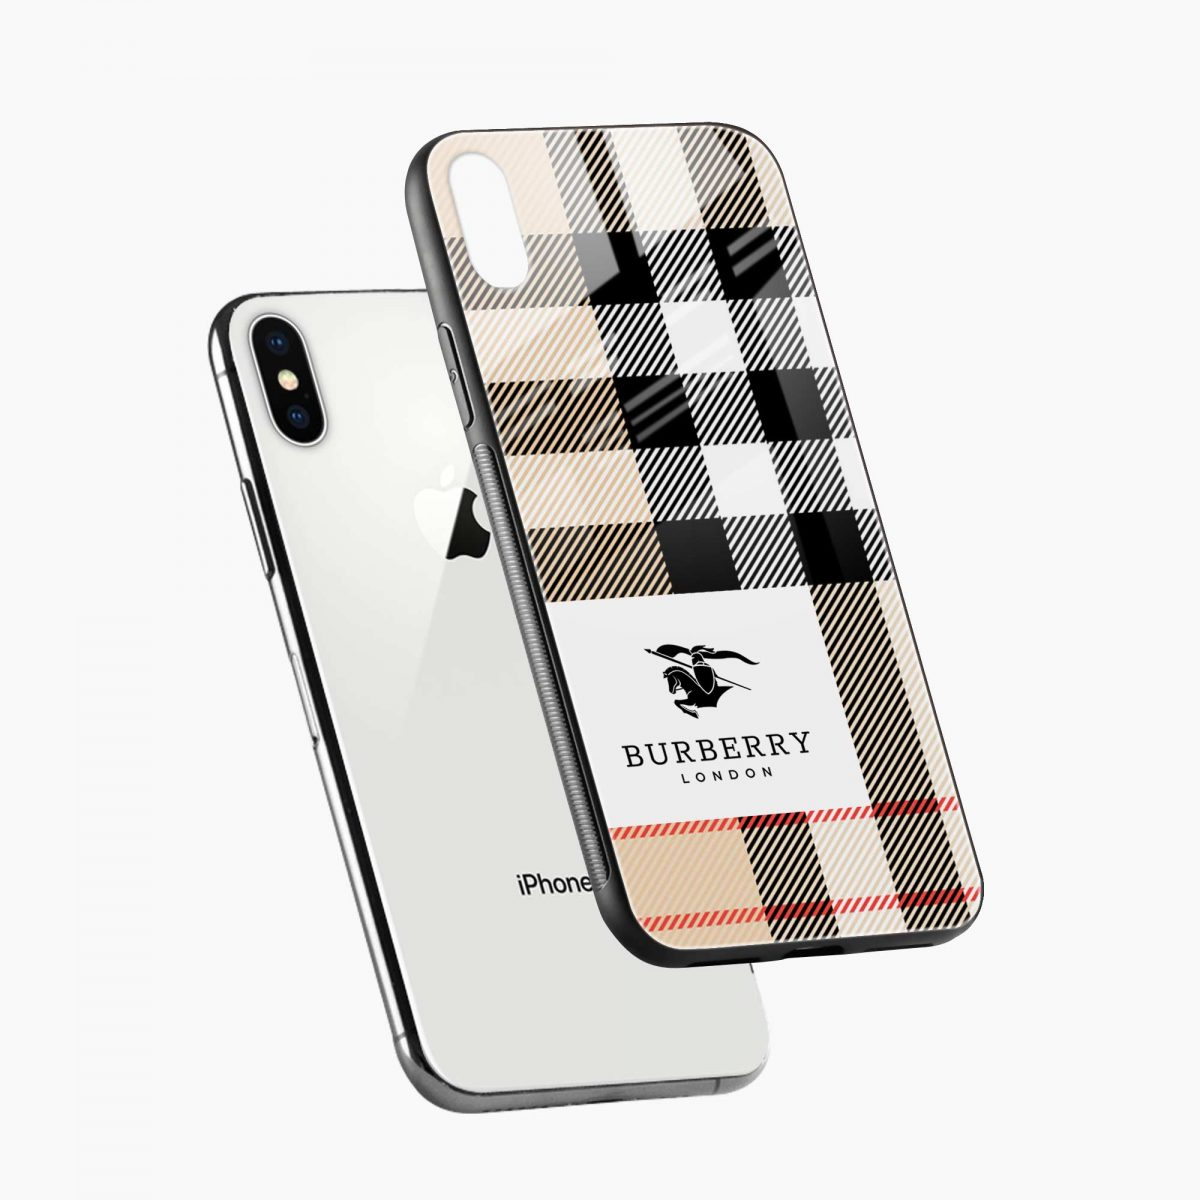 burberry cross lines pattern diagonal view apple iphone x xs max back cover